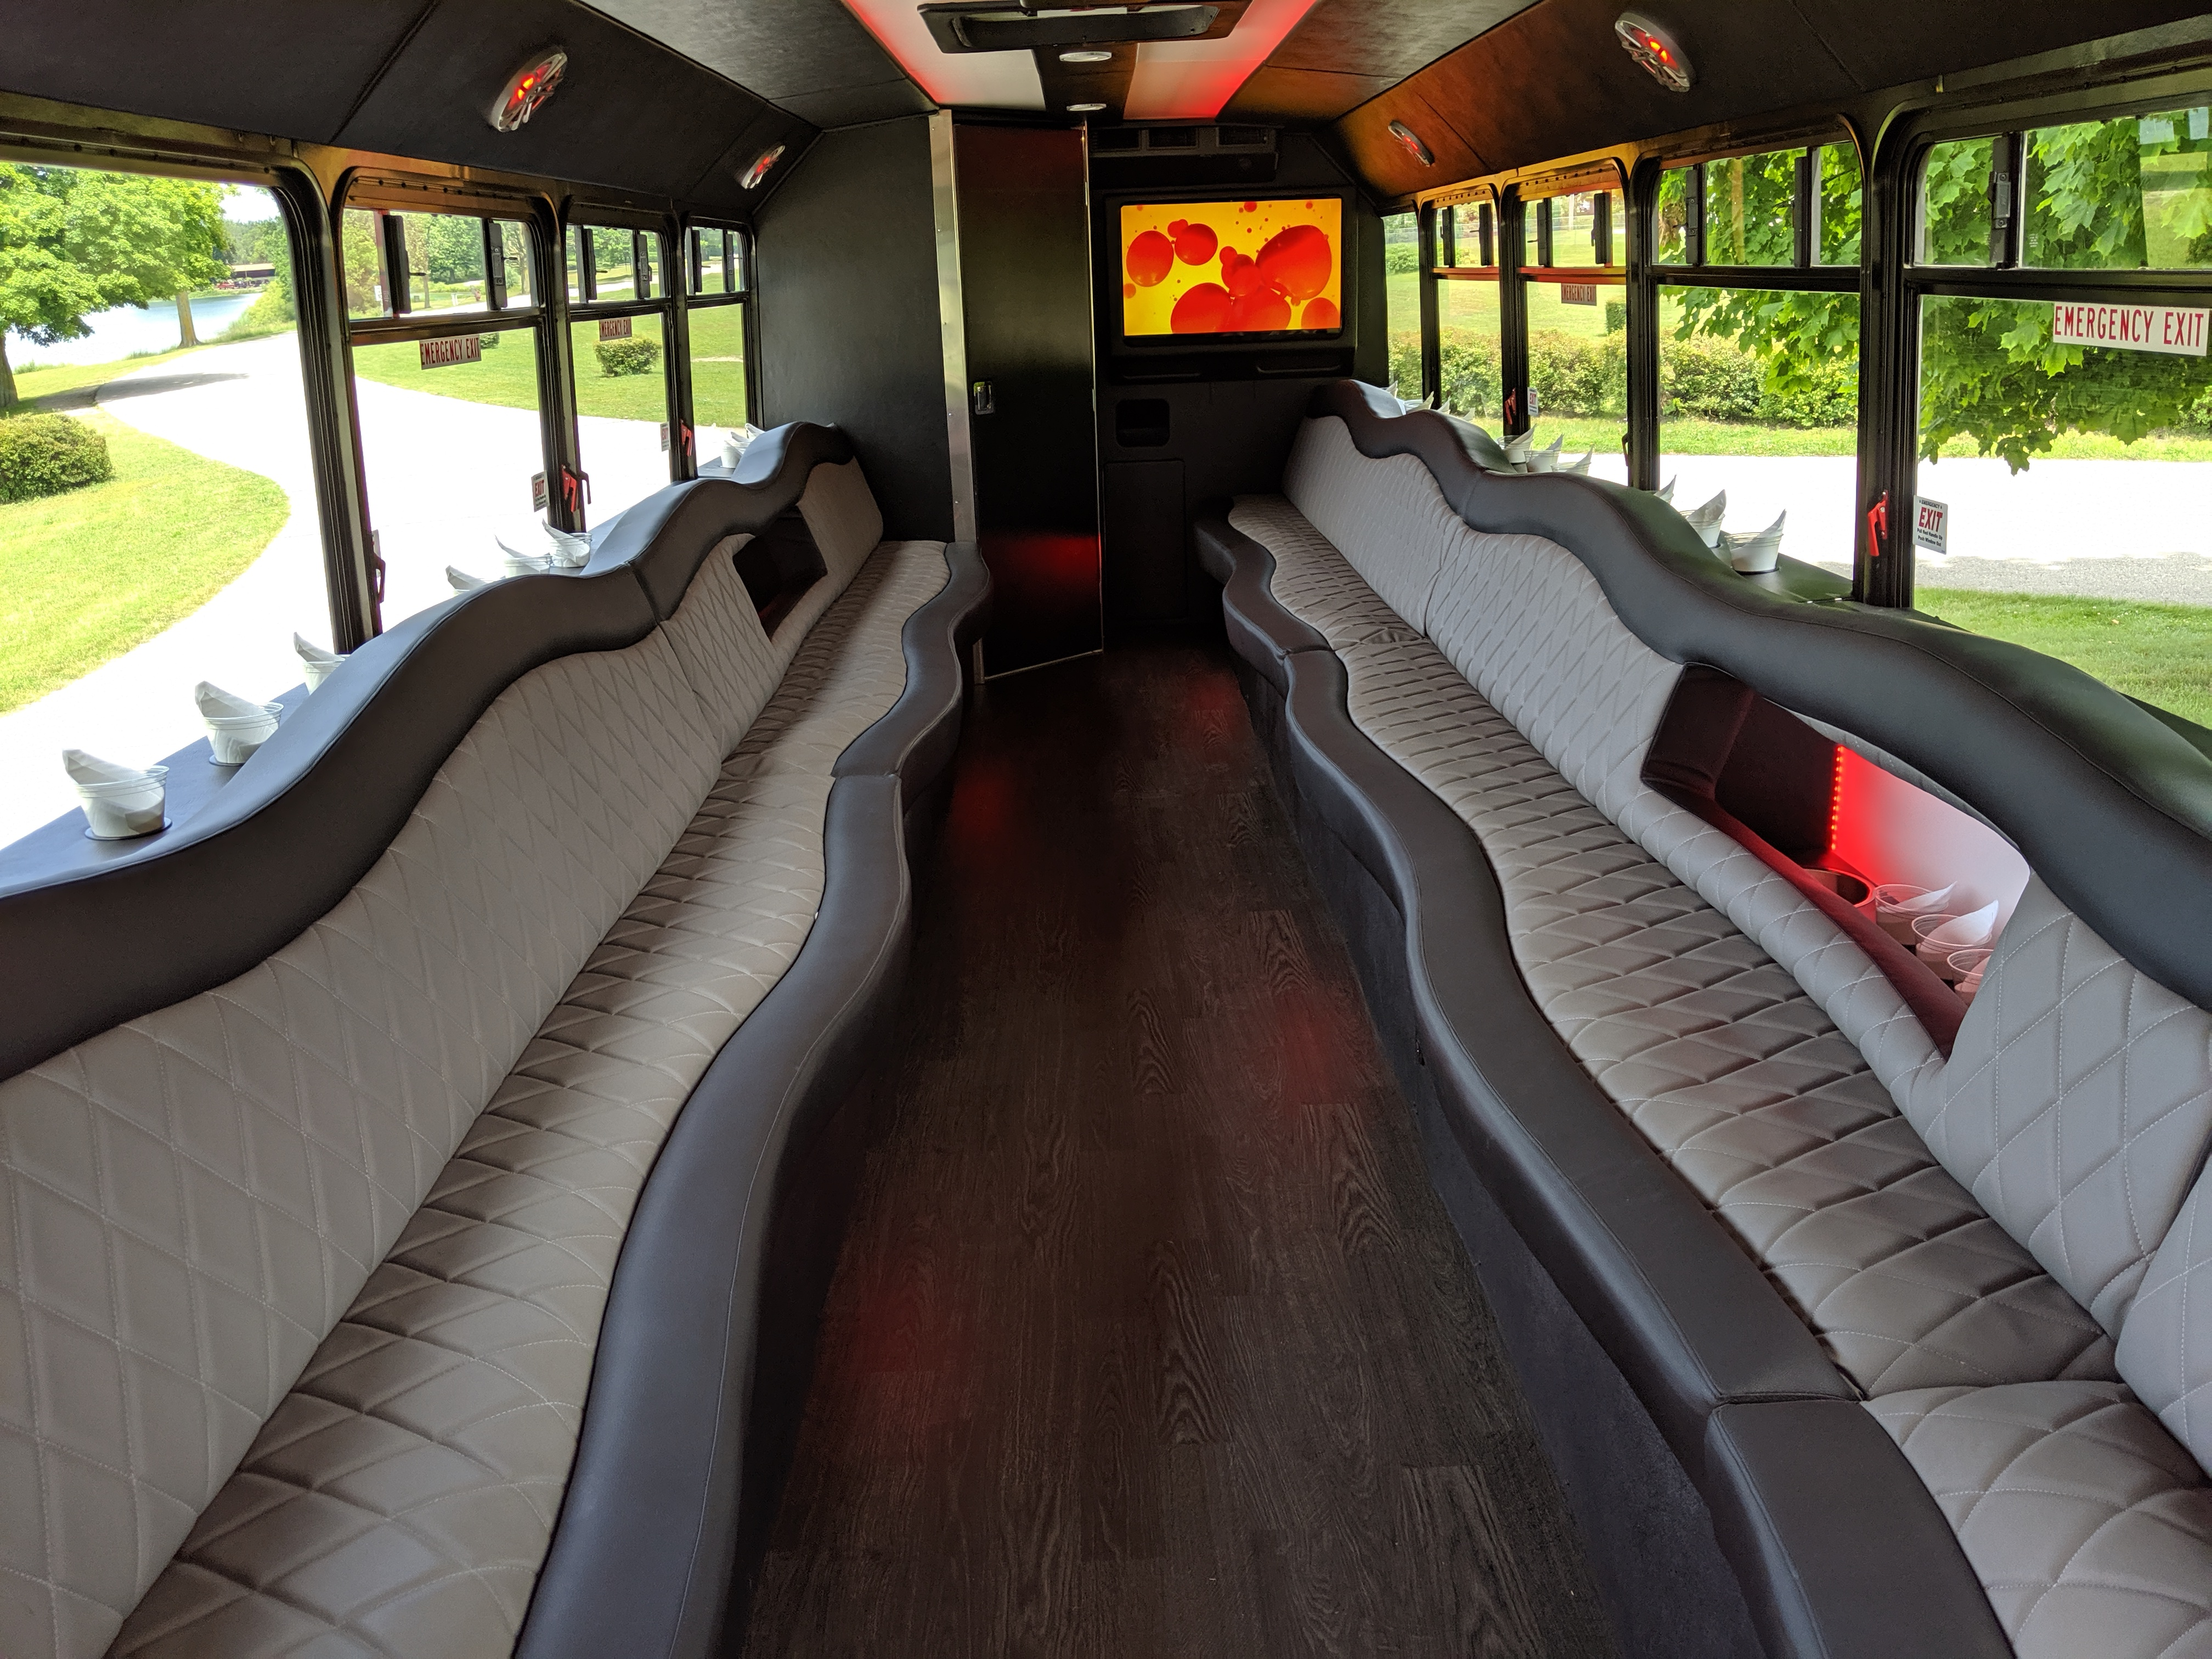 30 Passenger Luxury Limo Bus Interior 2